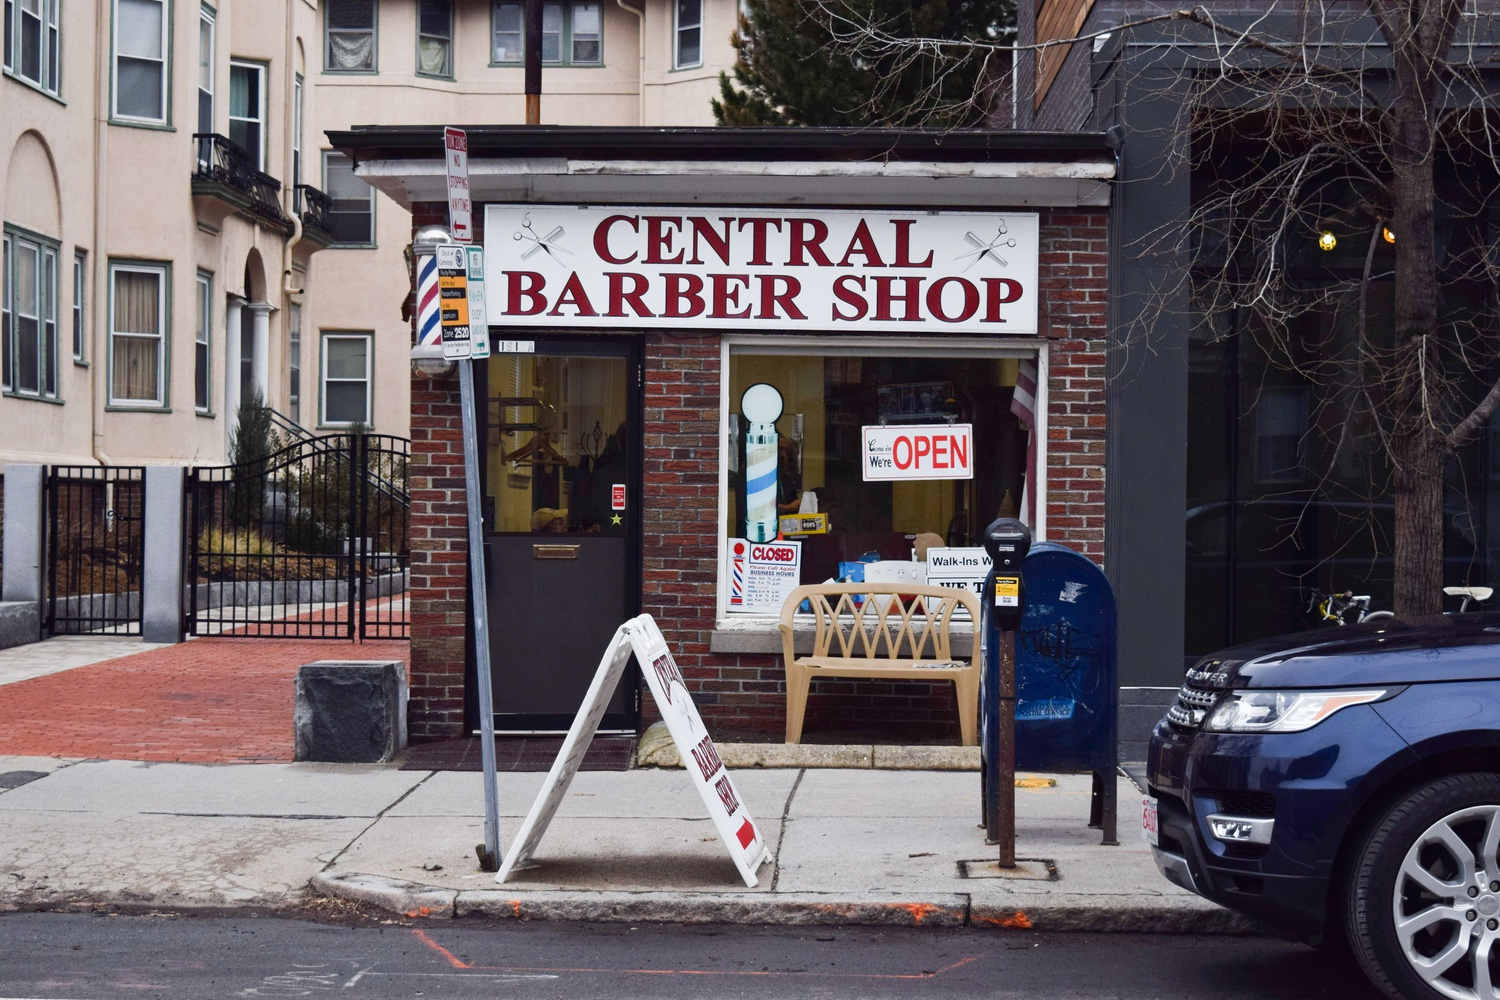 Central Barber Shop is located on Mass Ave. and is often frequented by Harvard Law School students due to its proximity to the Law School.